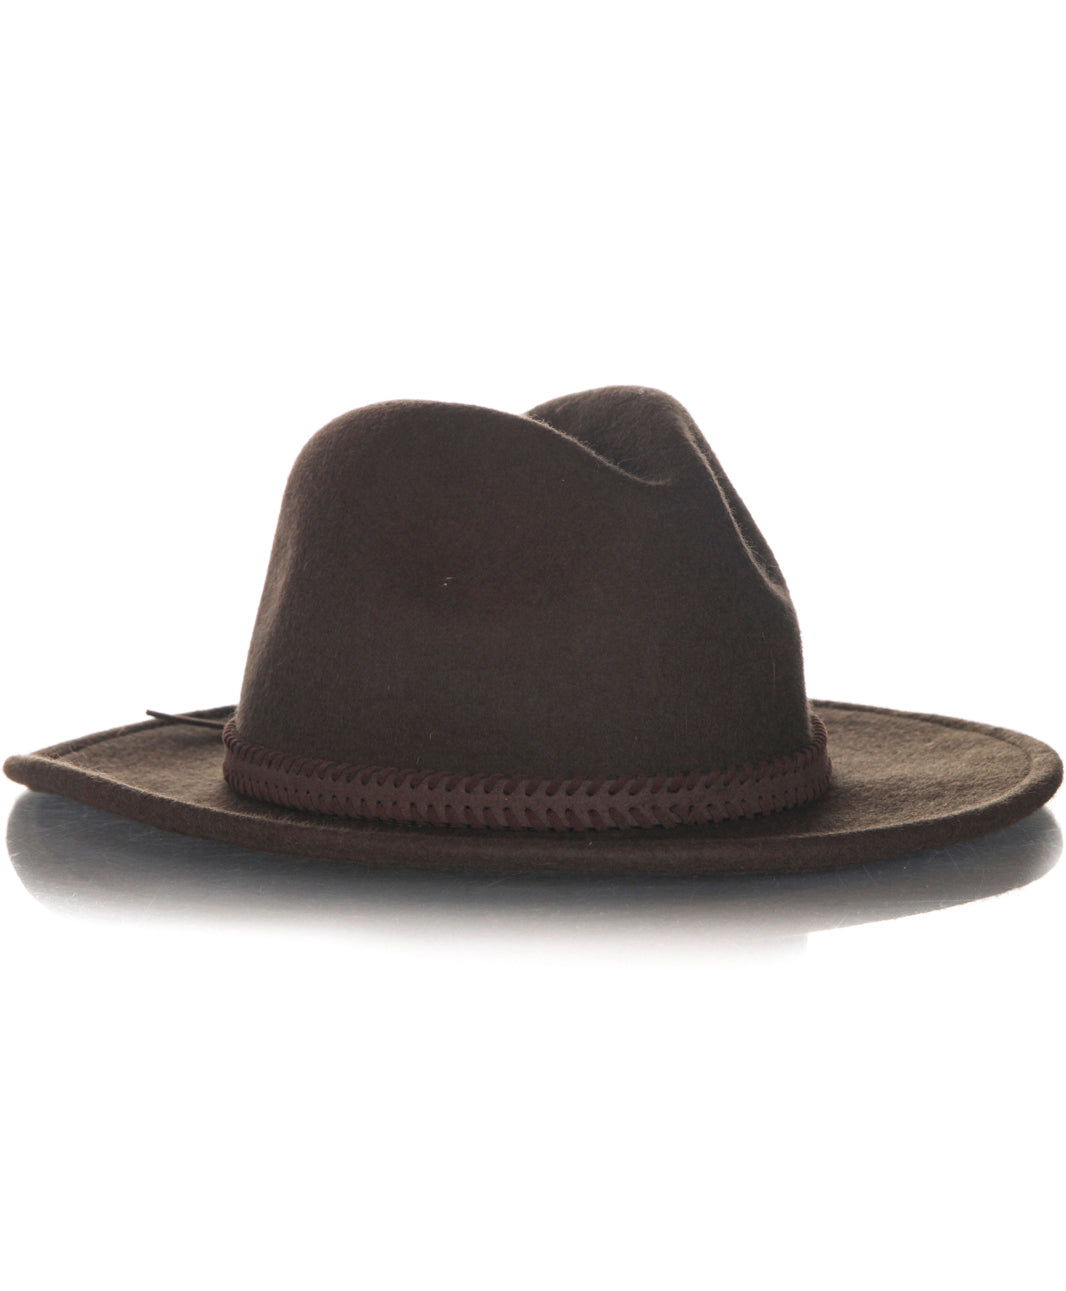 TREASURE & BOND Wool Panama hat